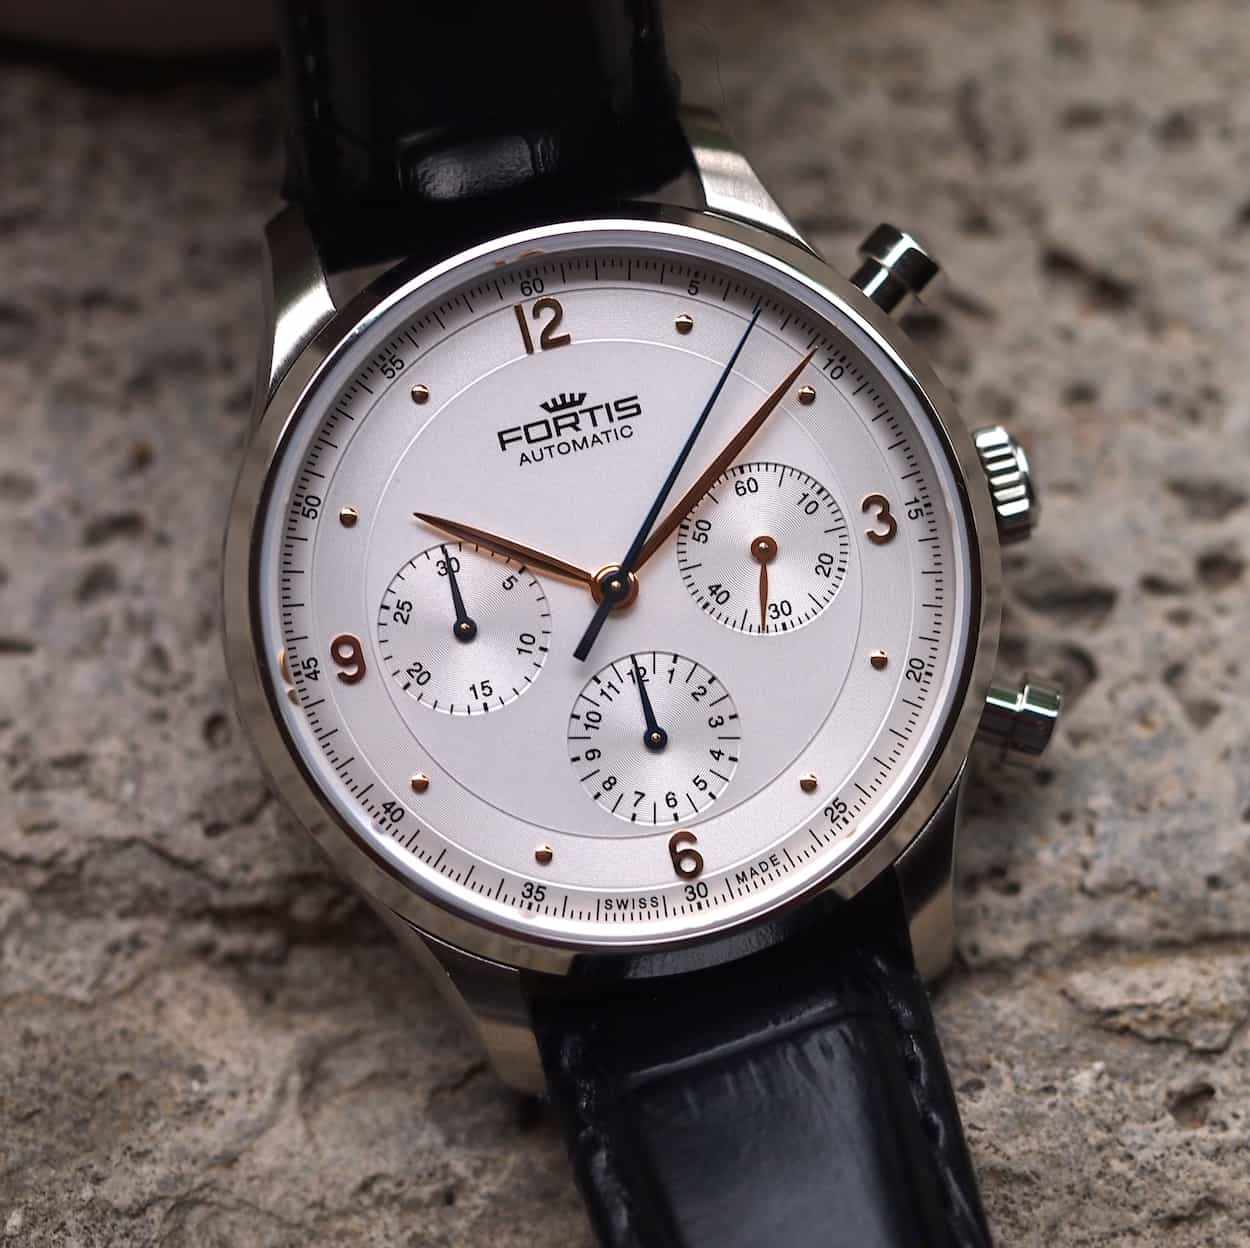 Fortis Tycoon dial